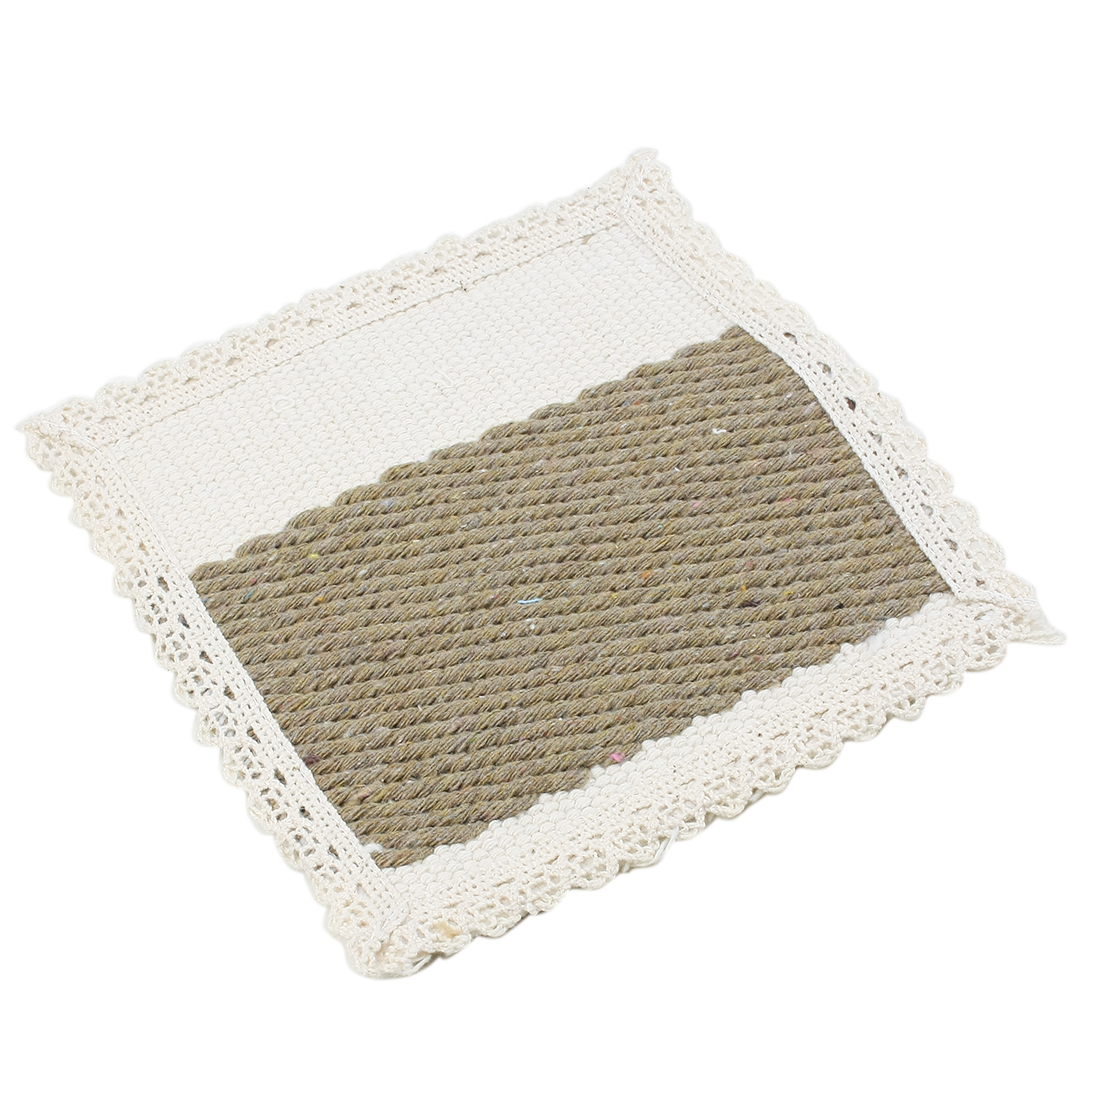 Cotton Beige and Brown Intertwined Heat Resistant Table Cup Mat Placemat 15 x 15cm